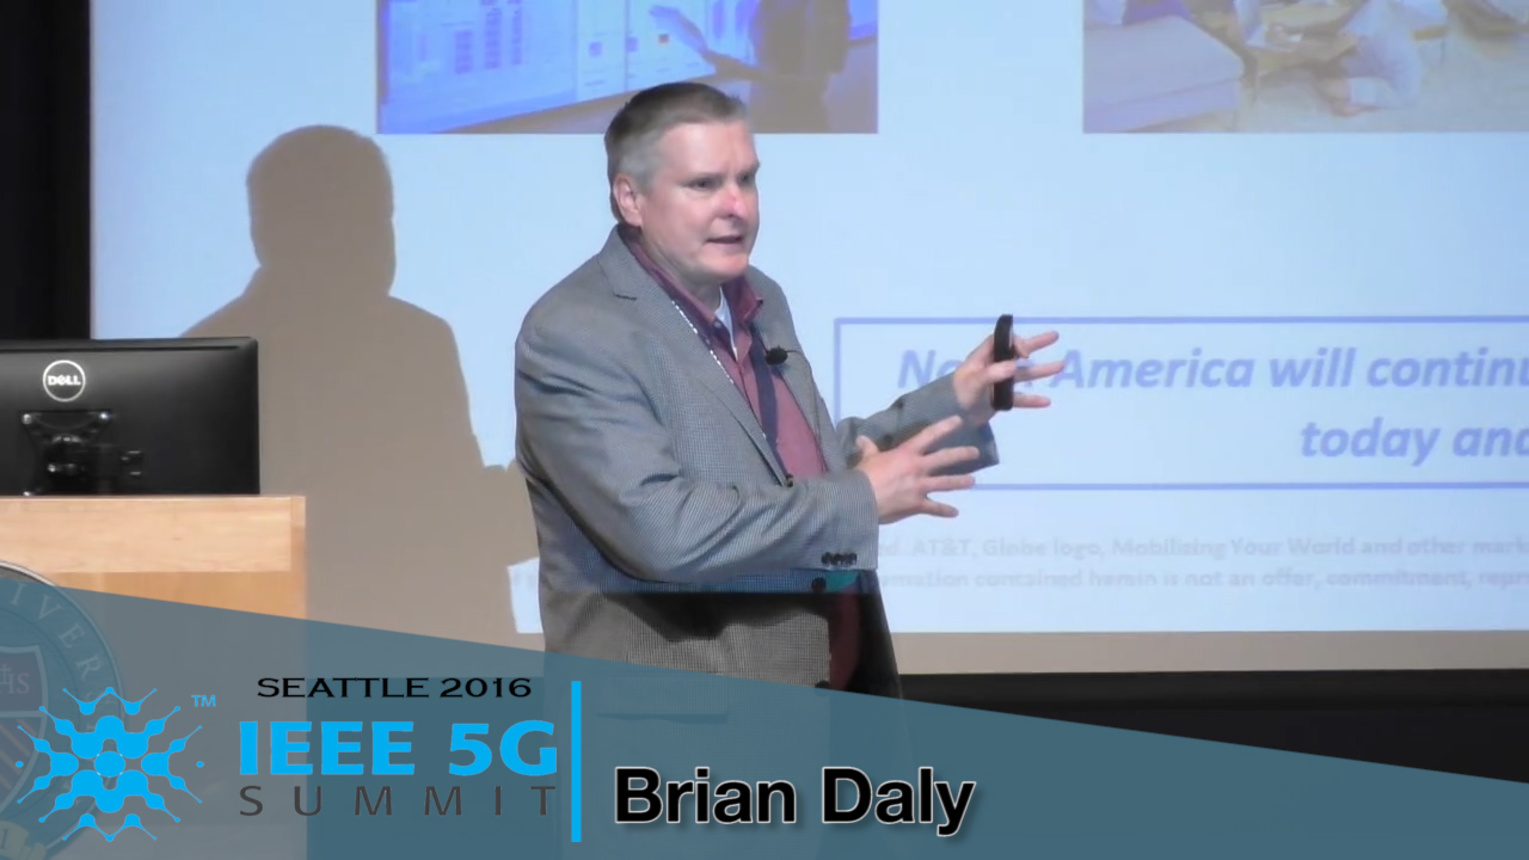 The Standards Road to 5G - 5G Summit, Seattle 2016